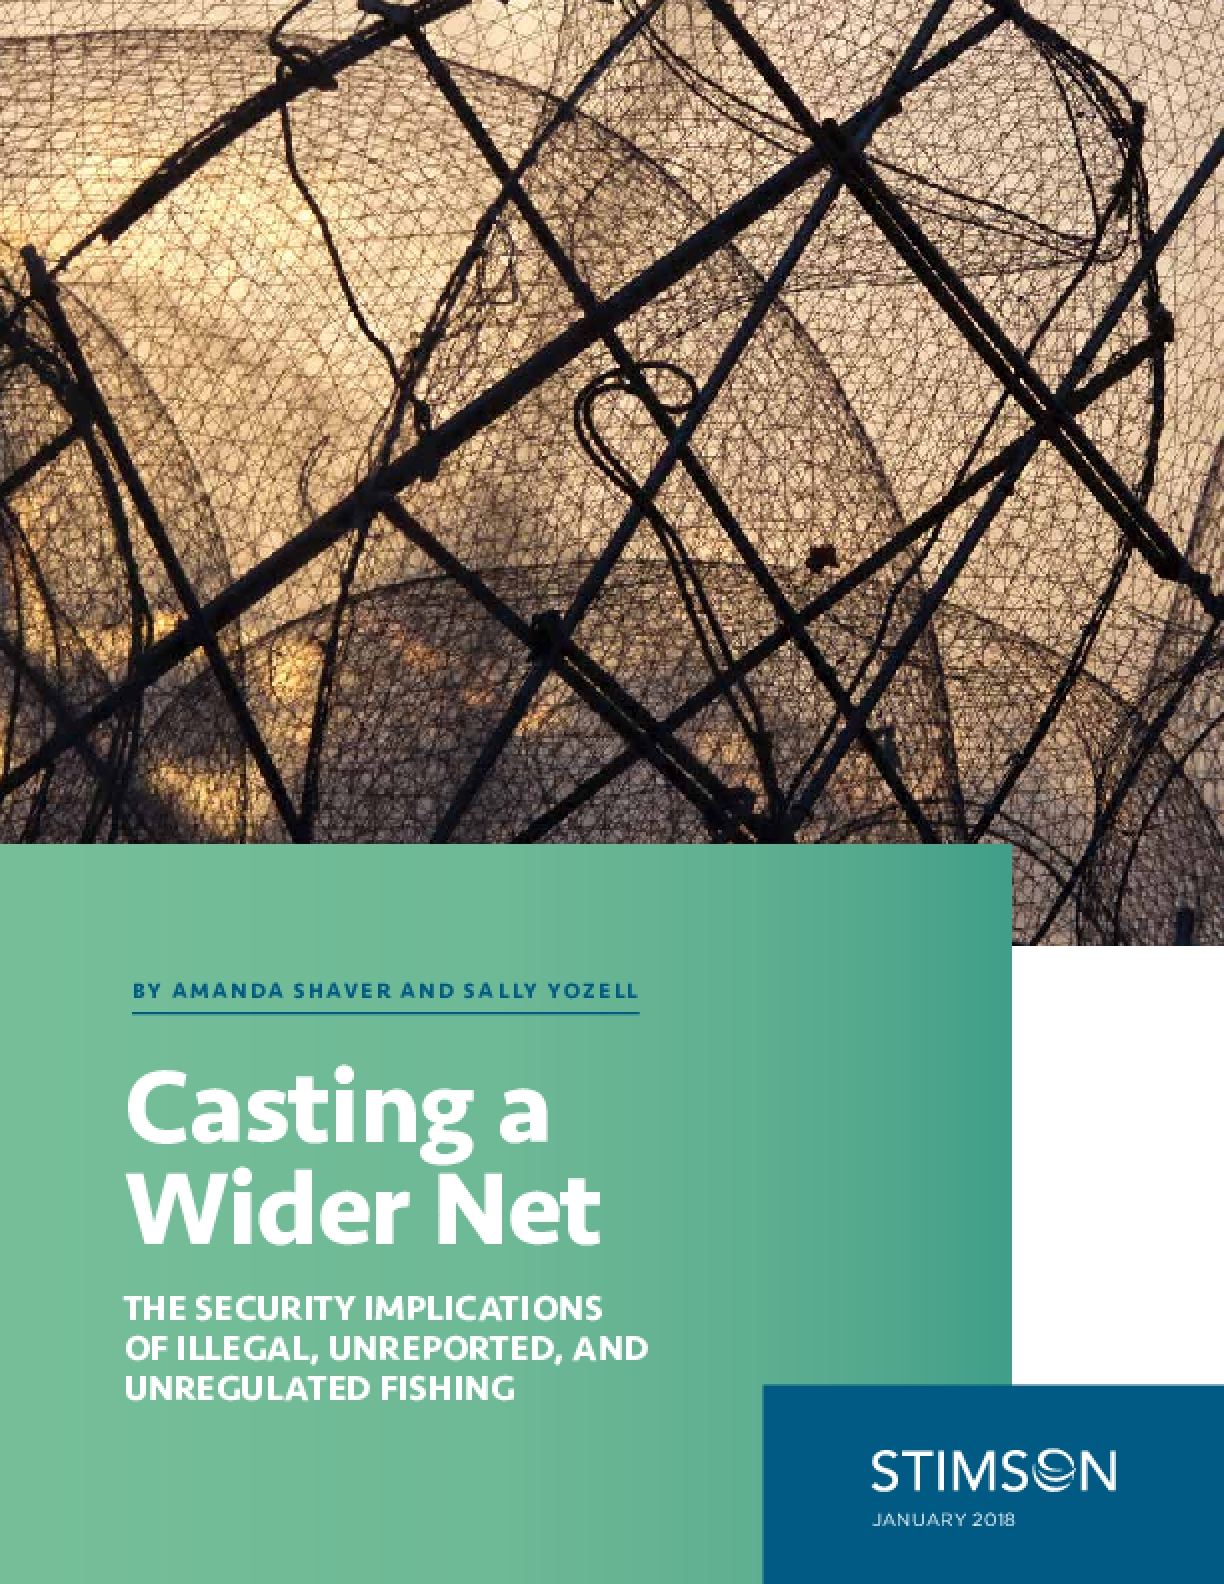 Casting a Wider Net: The Security Implications of Illegal, Unreported, and Unregulated Fishing